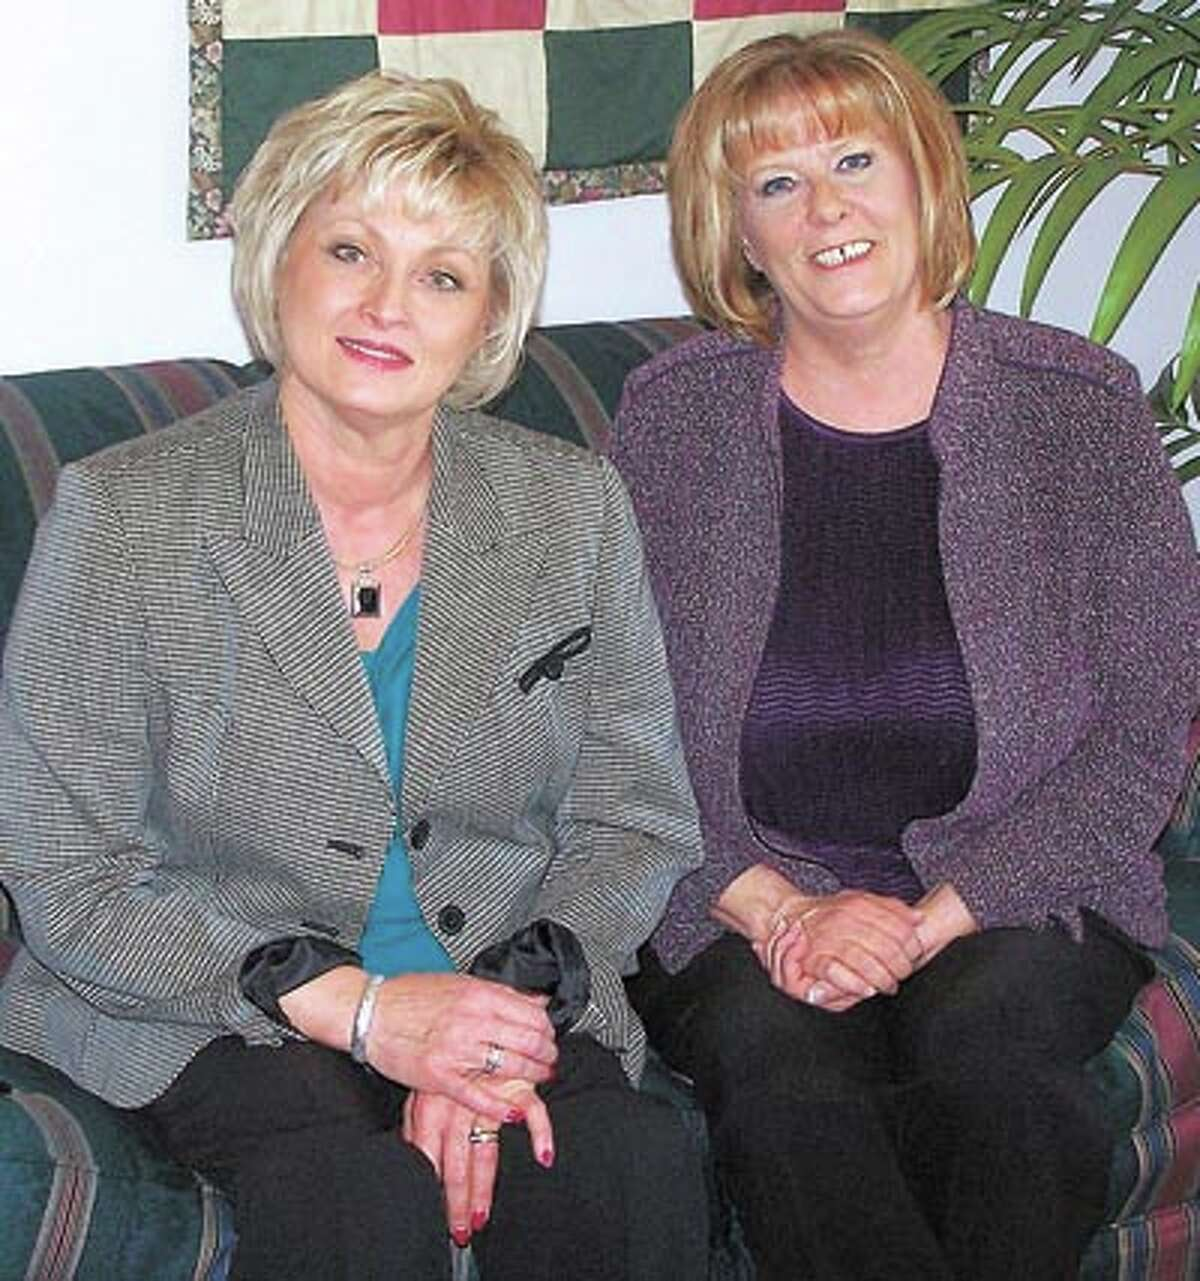 Call Fran Hawke, left, Debbie Court or one of the other friendly staff at Staffing Resources when you need good people fast. The phone number is 684-0527. Call them today!